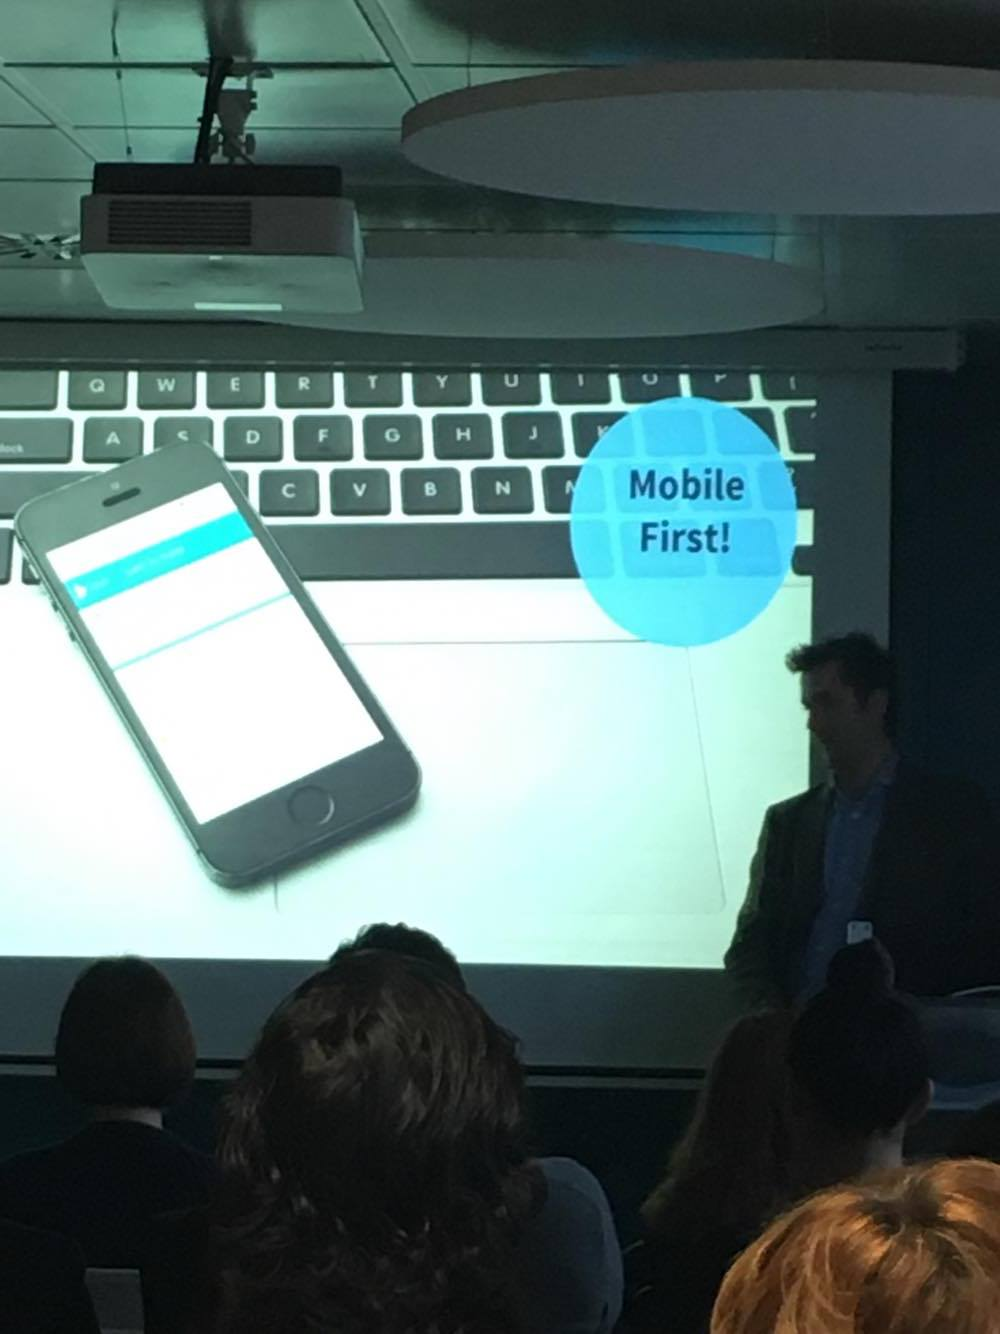 Mobile first during Skyscanner's first industry hotels event